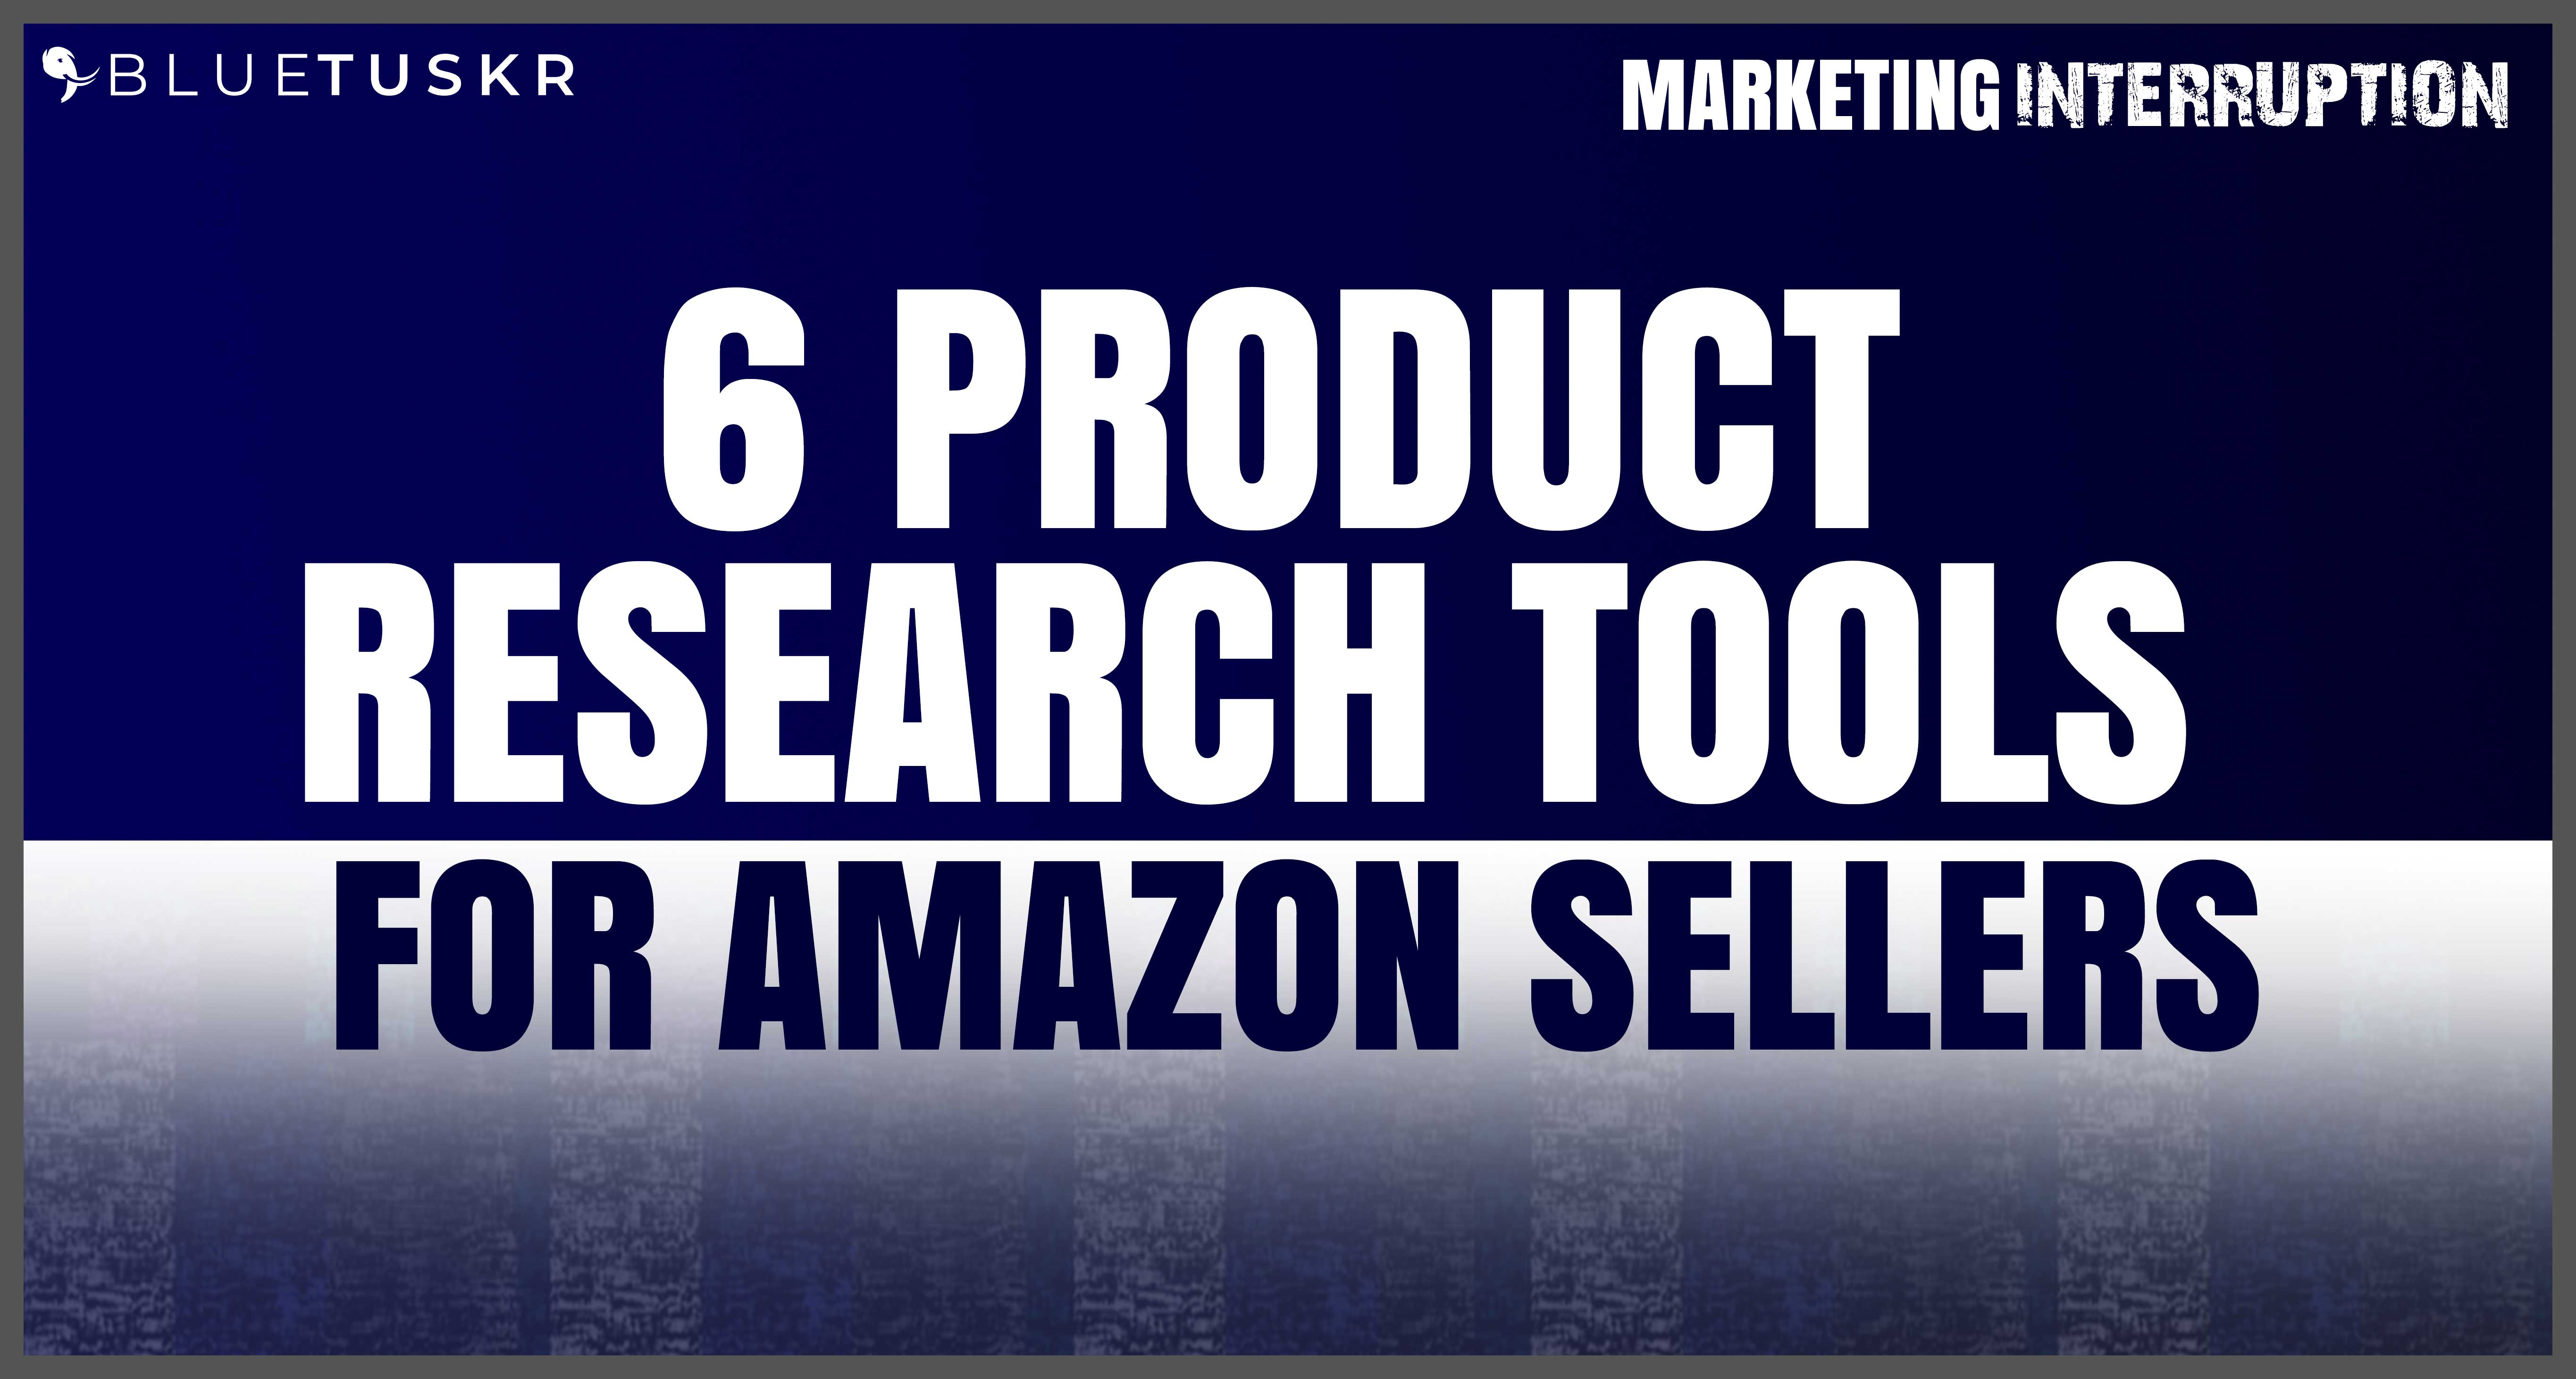 6 Product Research Tools for Amazon Sellers